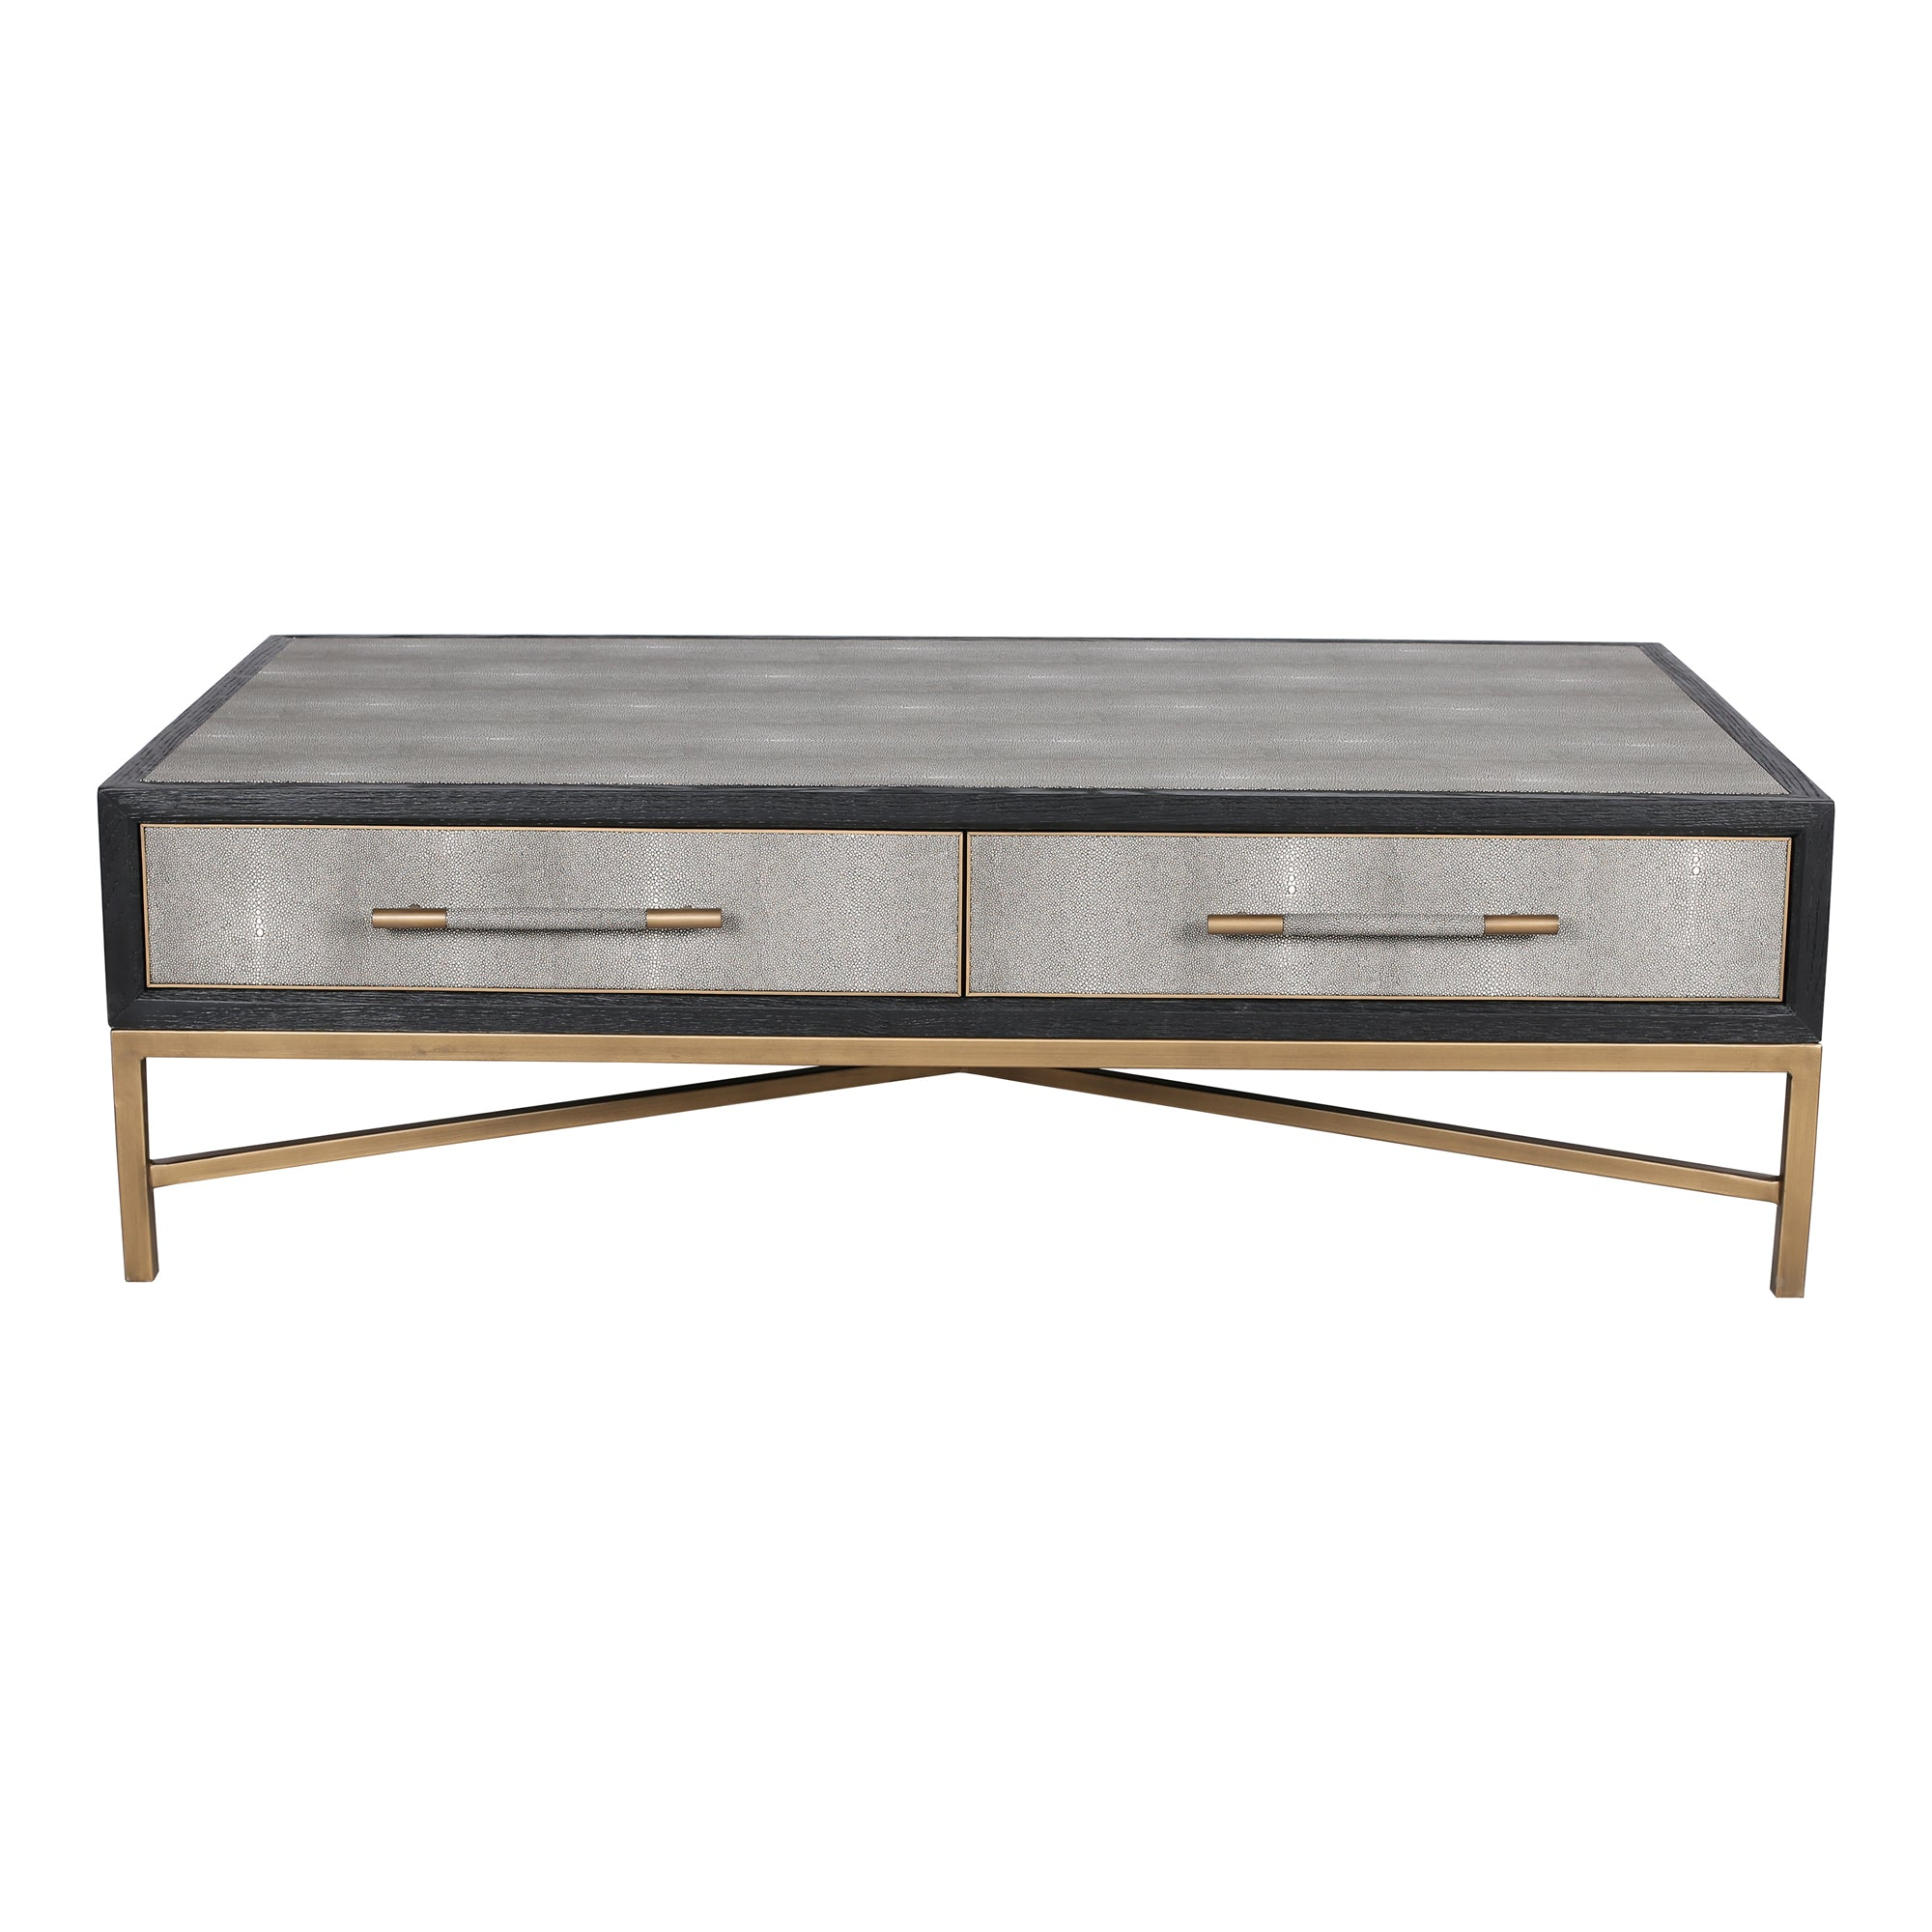 MAKO COFFEE TABLE, Grey - Tops-Dress